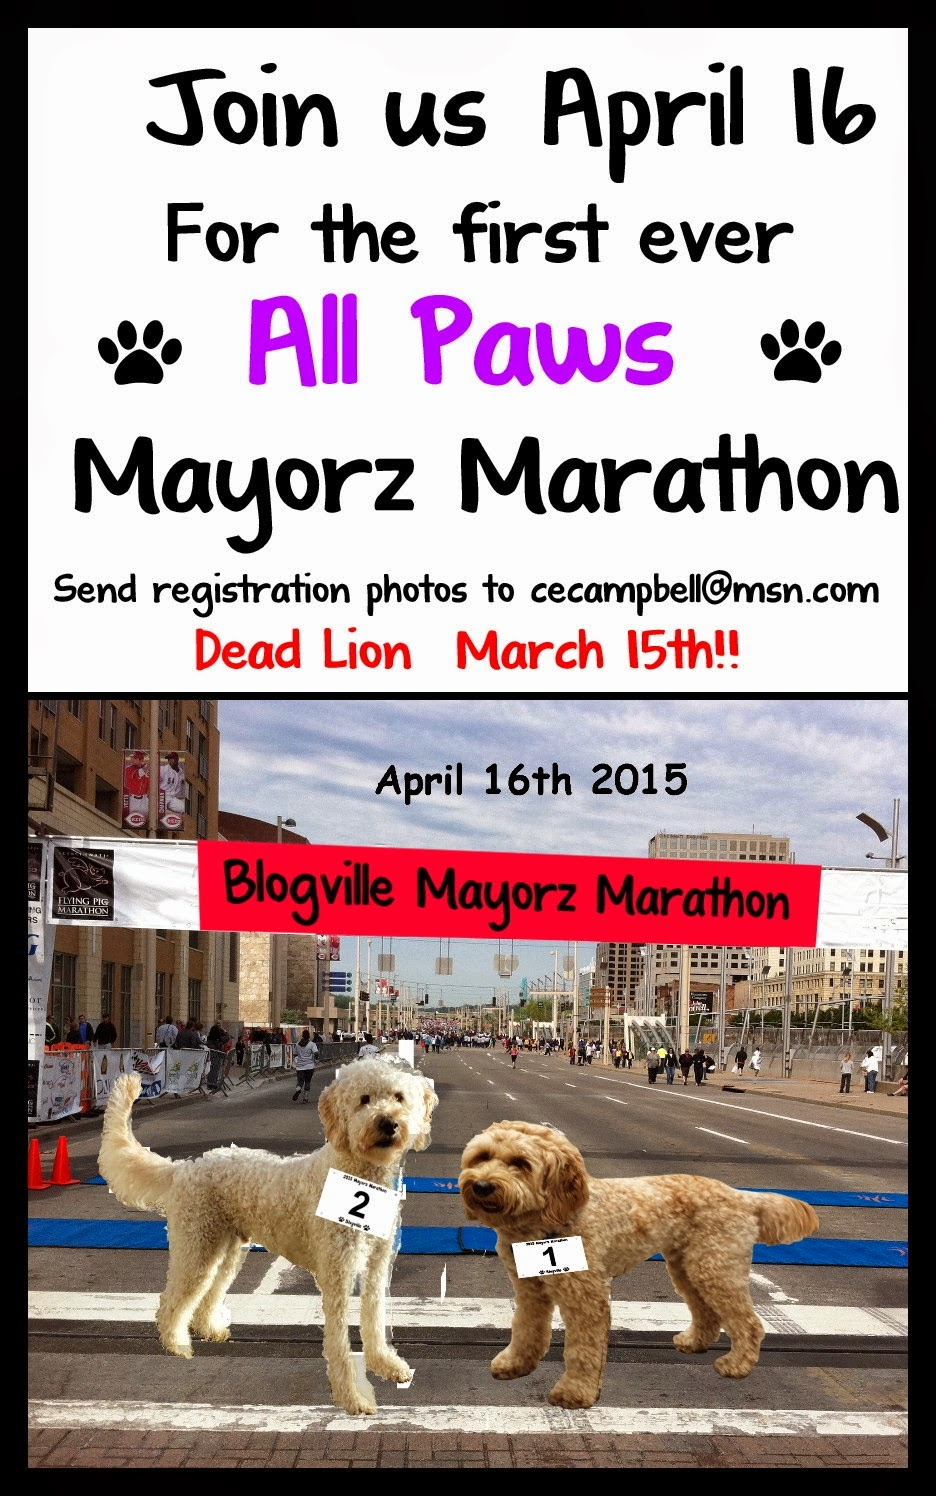 http://murphyandstanley.blogspot.com/2015/01/official-announcement-mayorz-marathon.html